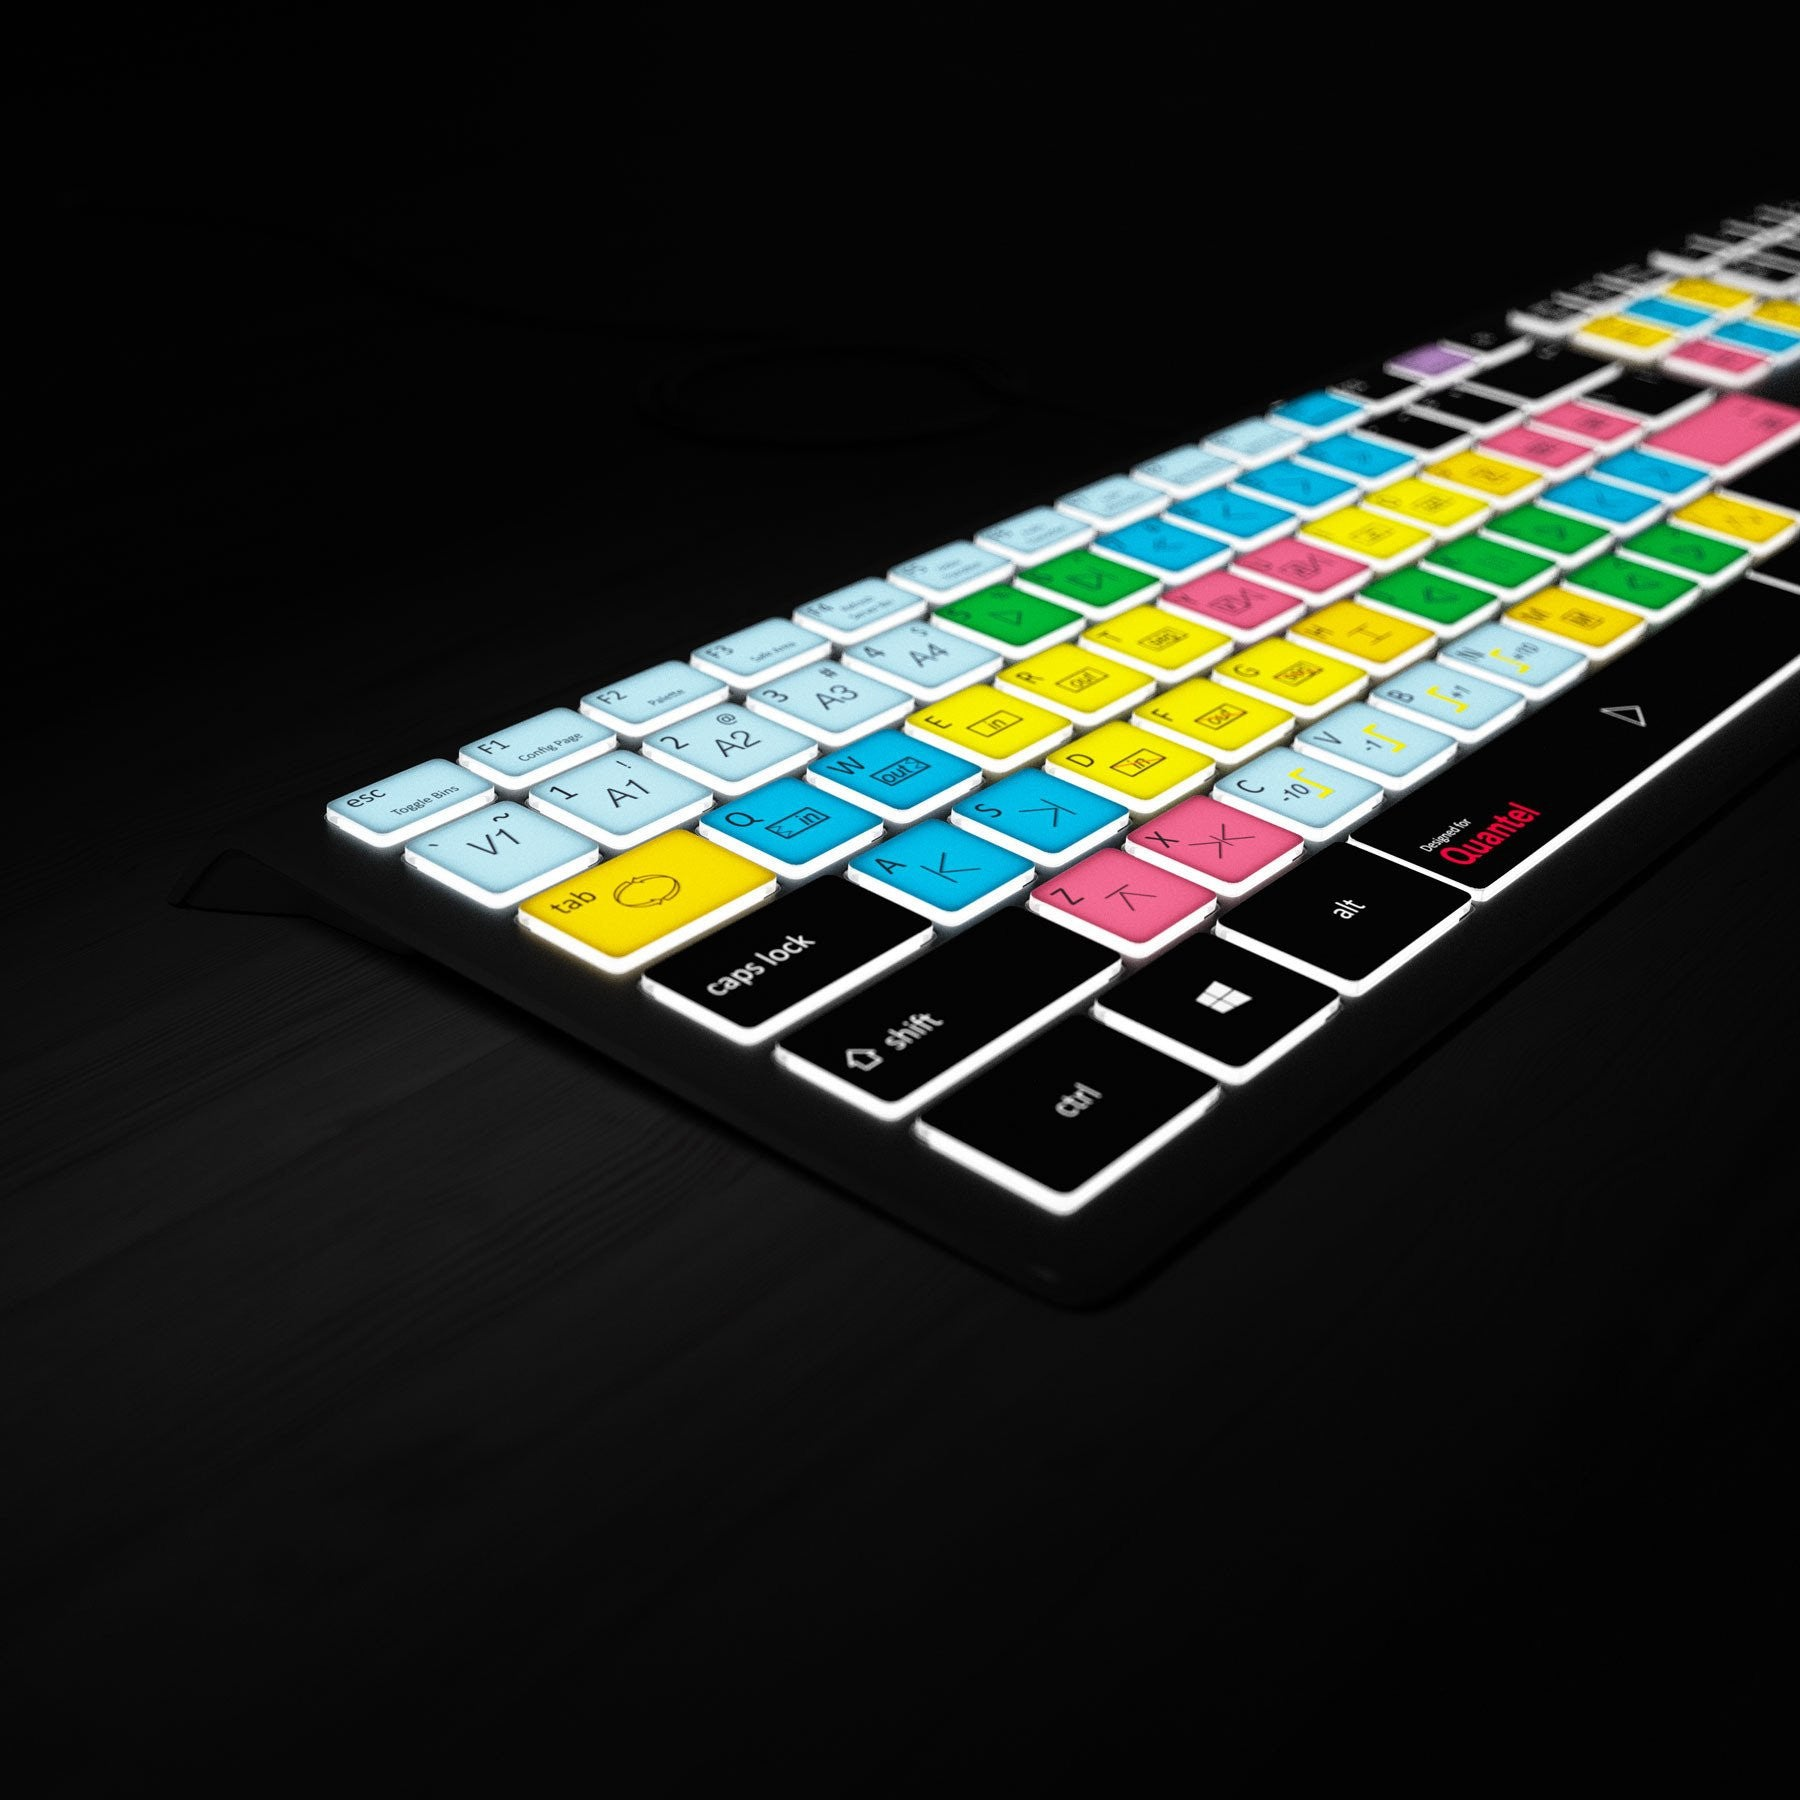 Sam Quantel Keyboard - Backlit PC